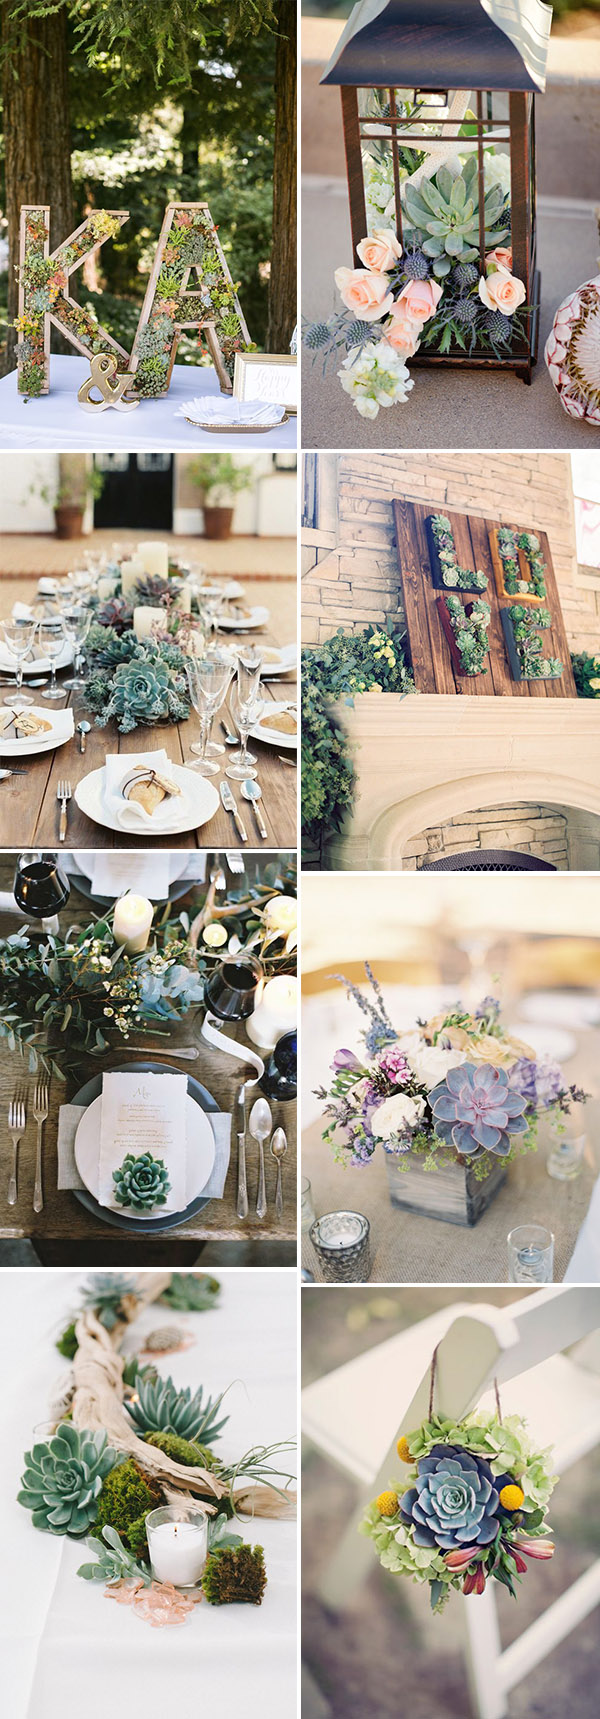 beautiful and creative wedding decoration ideas with succulents